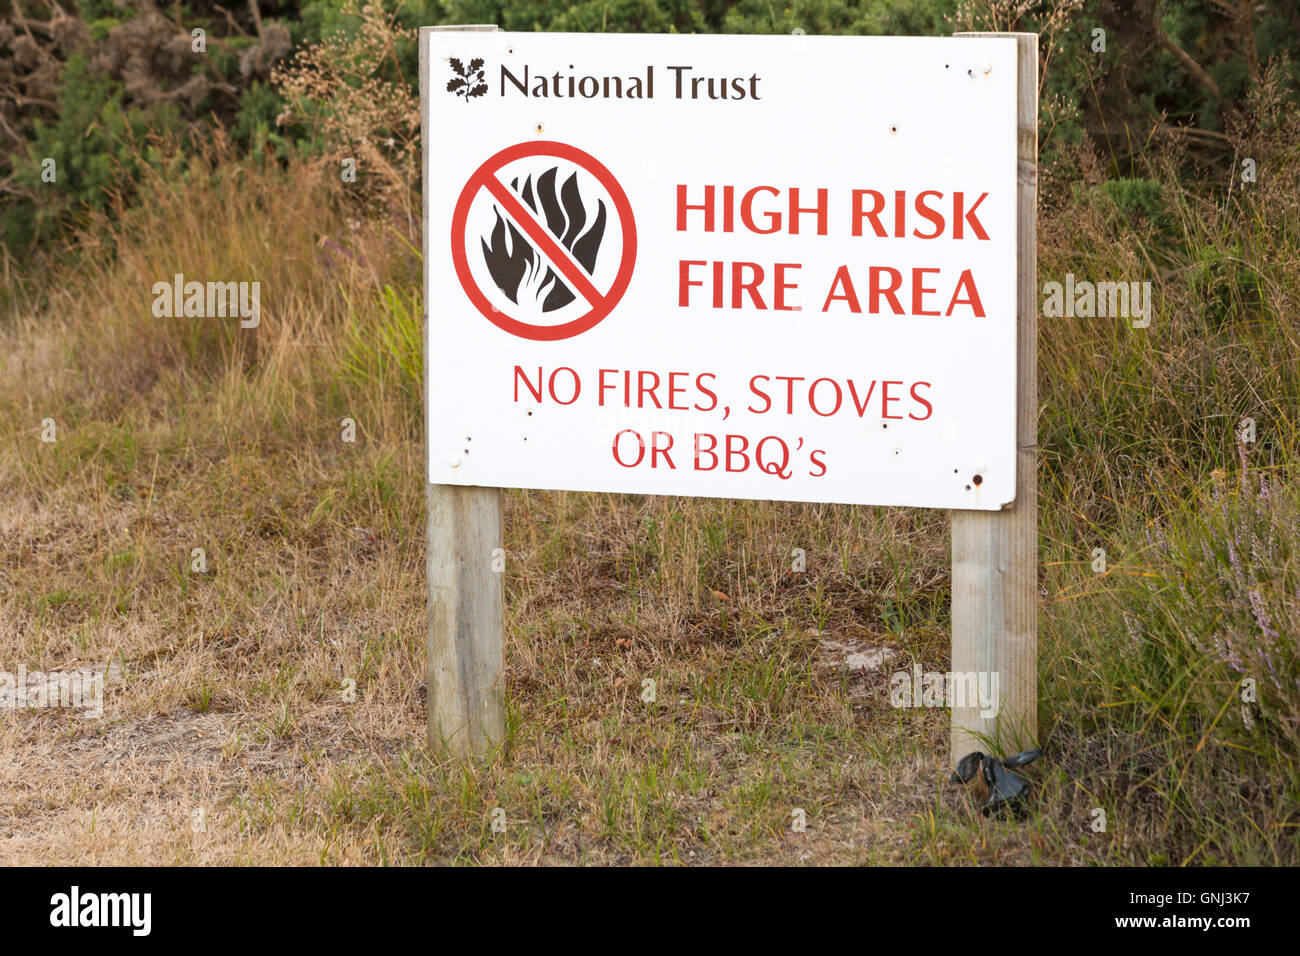 National Trust high risk fire area no fires stoves or BBQs sign along side of road at Studland, Dorset in August - Stock Image